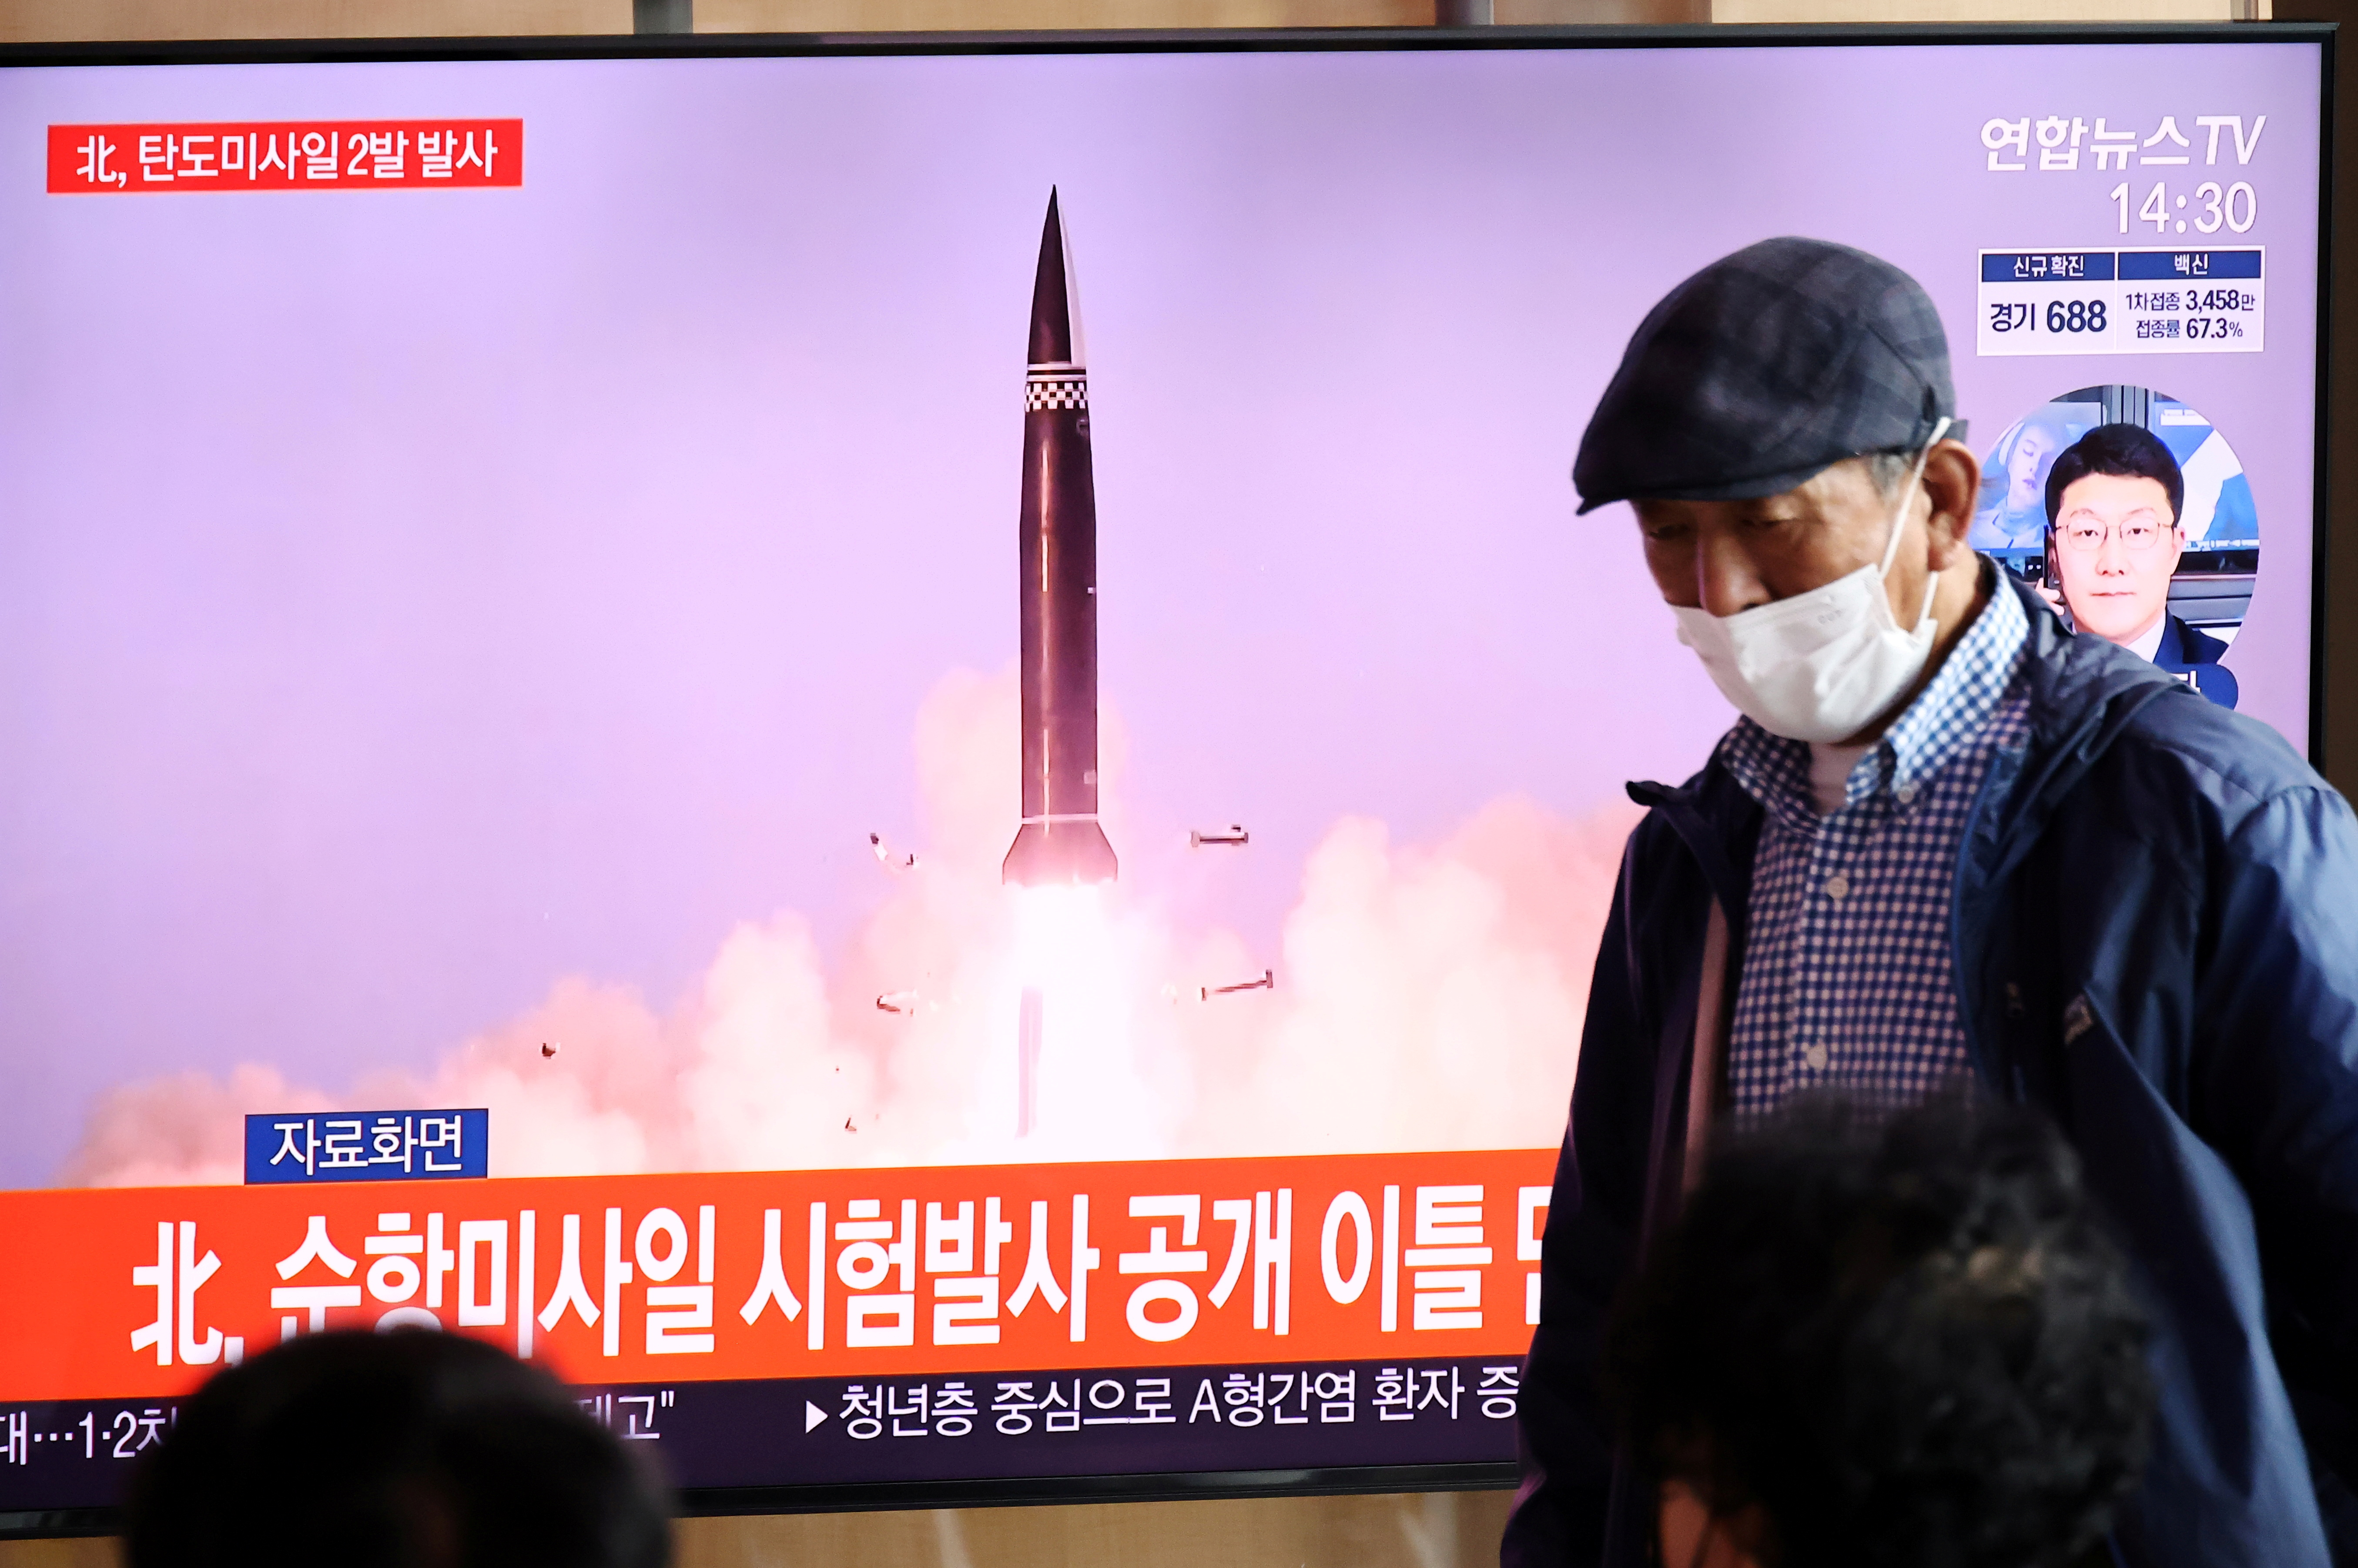 People watch a TV broadcasting file footage of a news report on North Korea firing what appeared to be a pair of ballistic missiles off its east coast, in Seoul, South Korea, September 15, 2021. REUTERS/Kim Hong-Ji/File Photo